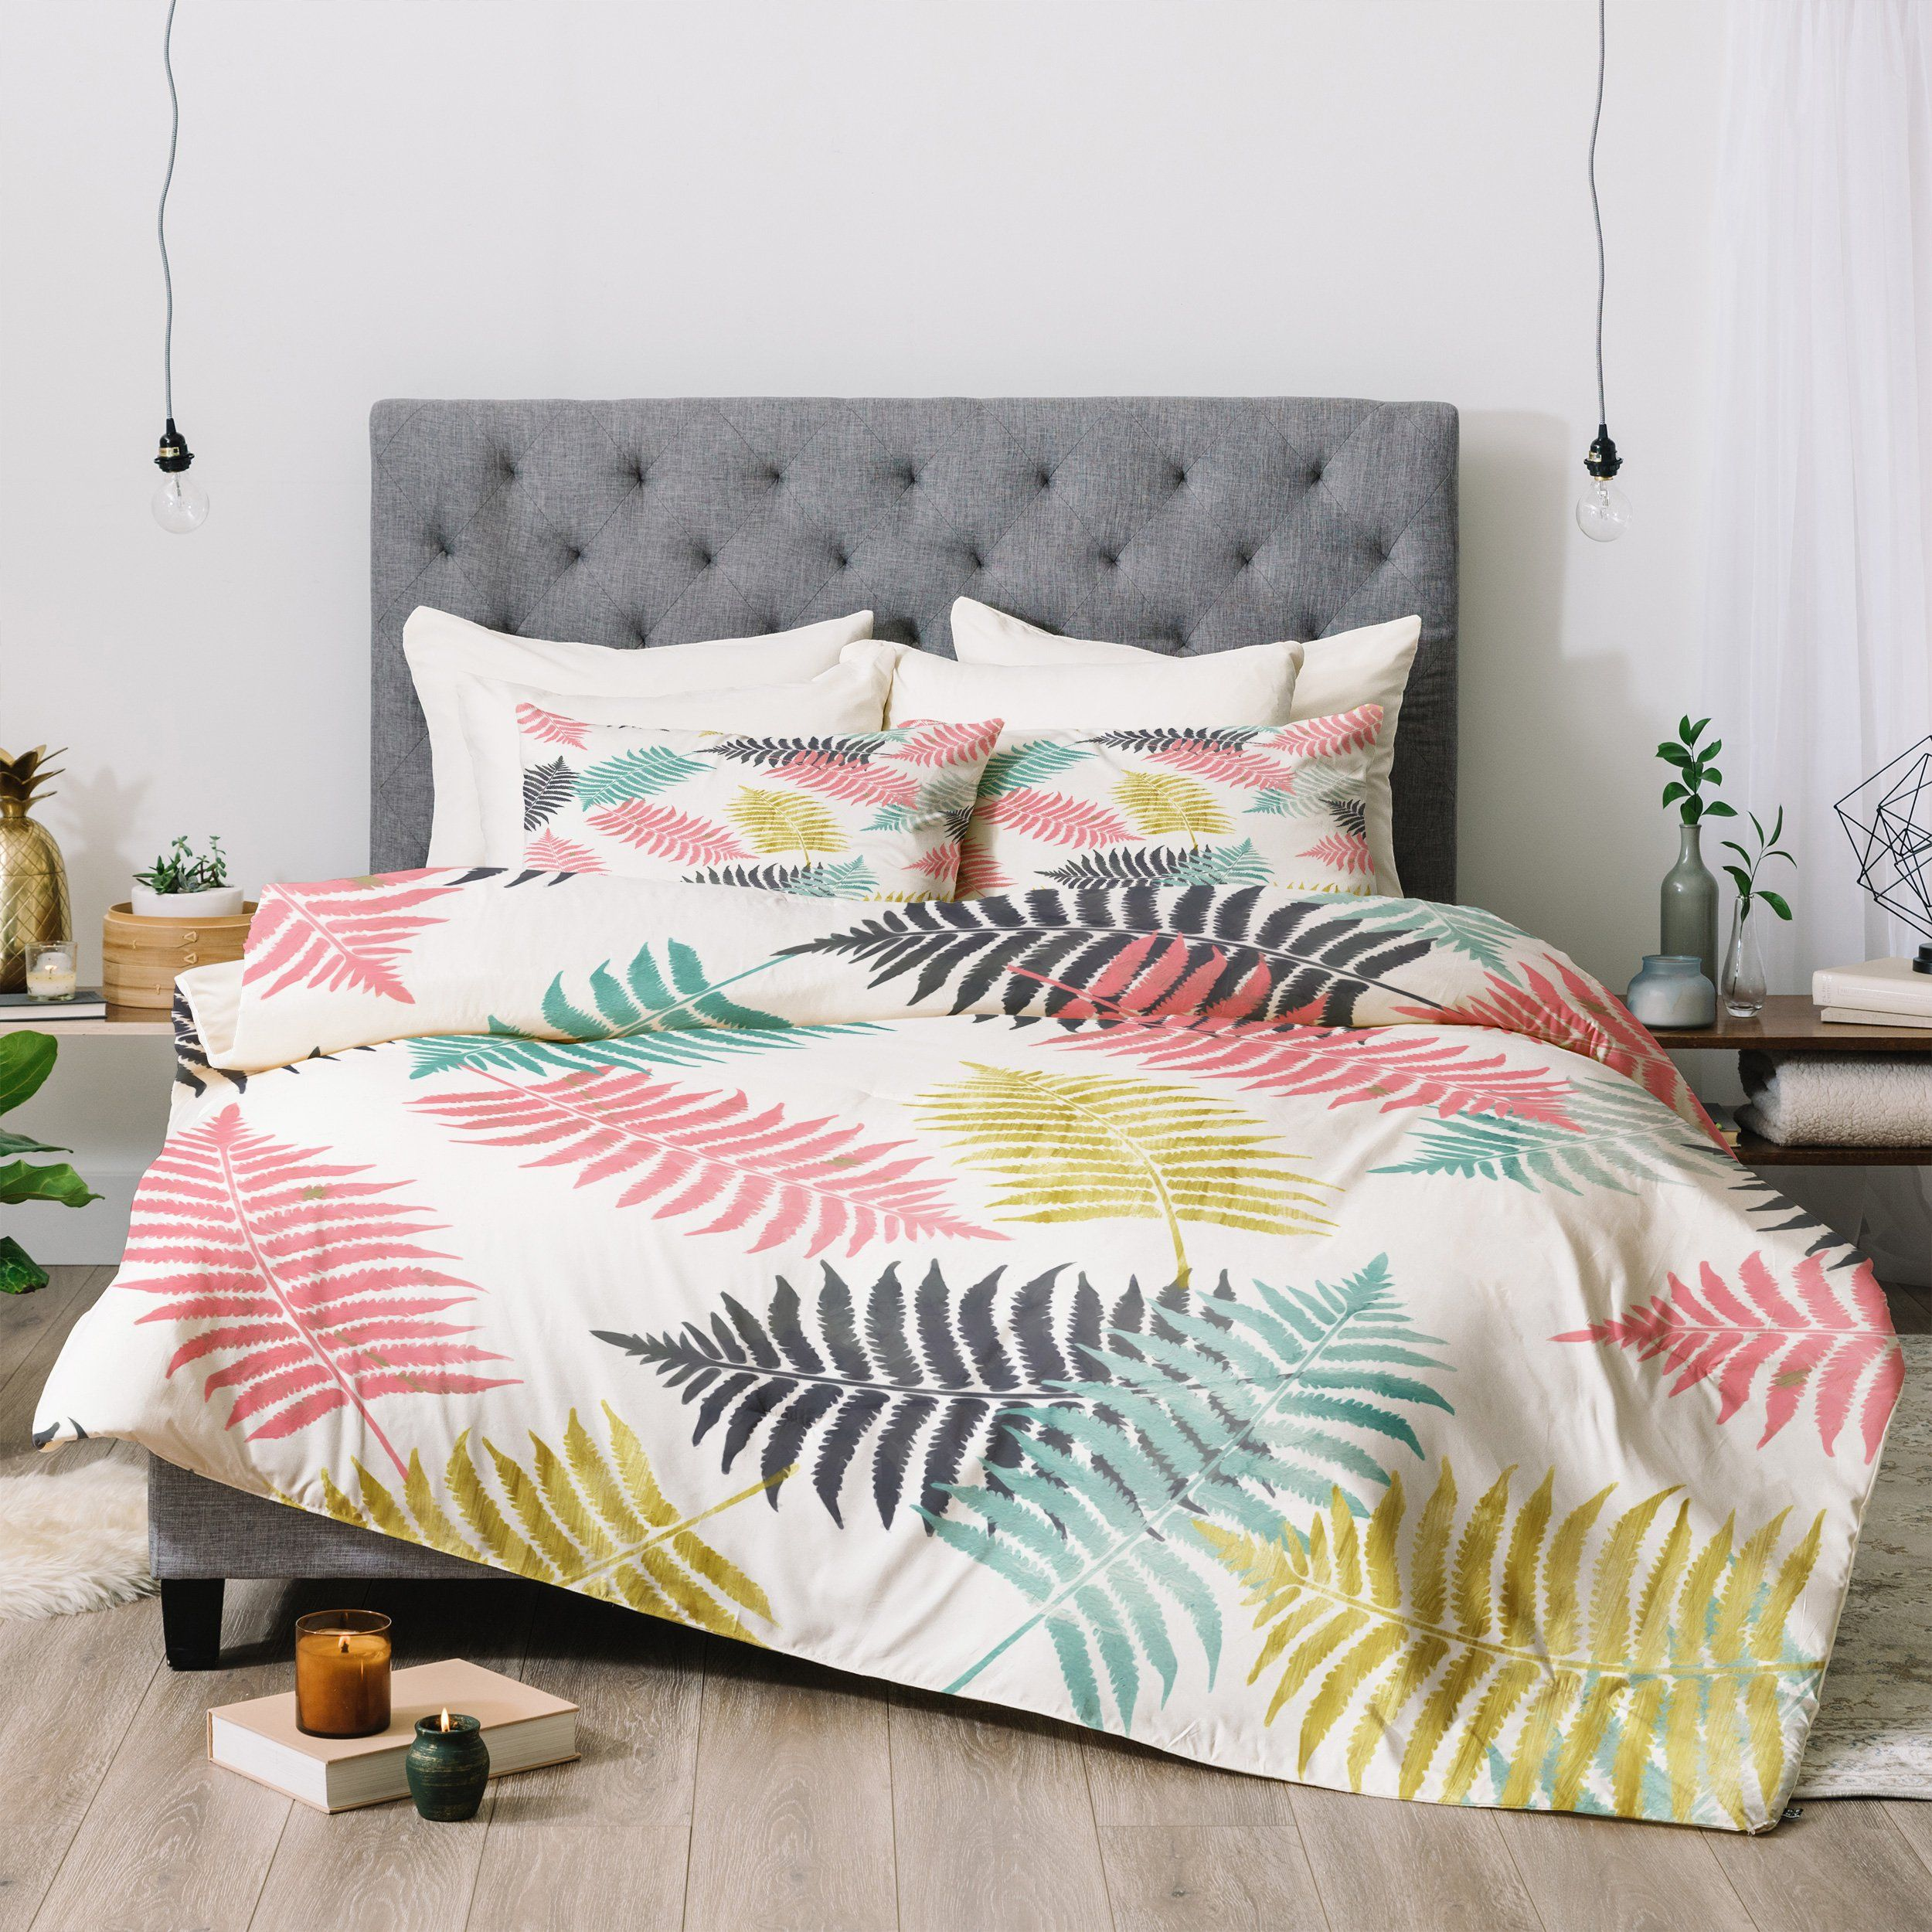 Elegant Home Decor Elegant Home Multicolor Pink White Green Blue Fun Elephants Design Striped Printed Reversible Cozy Colorful 4 Piece Full Size Quilt Bedspread Set with Decorative Pillow for Kids Girls Full